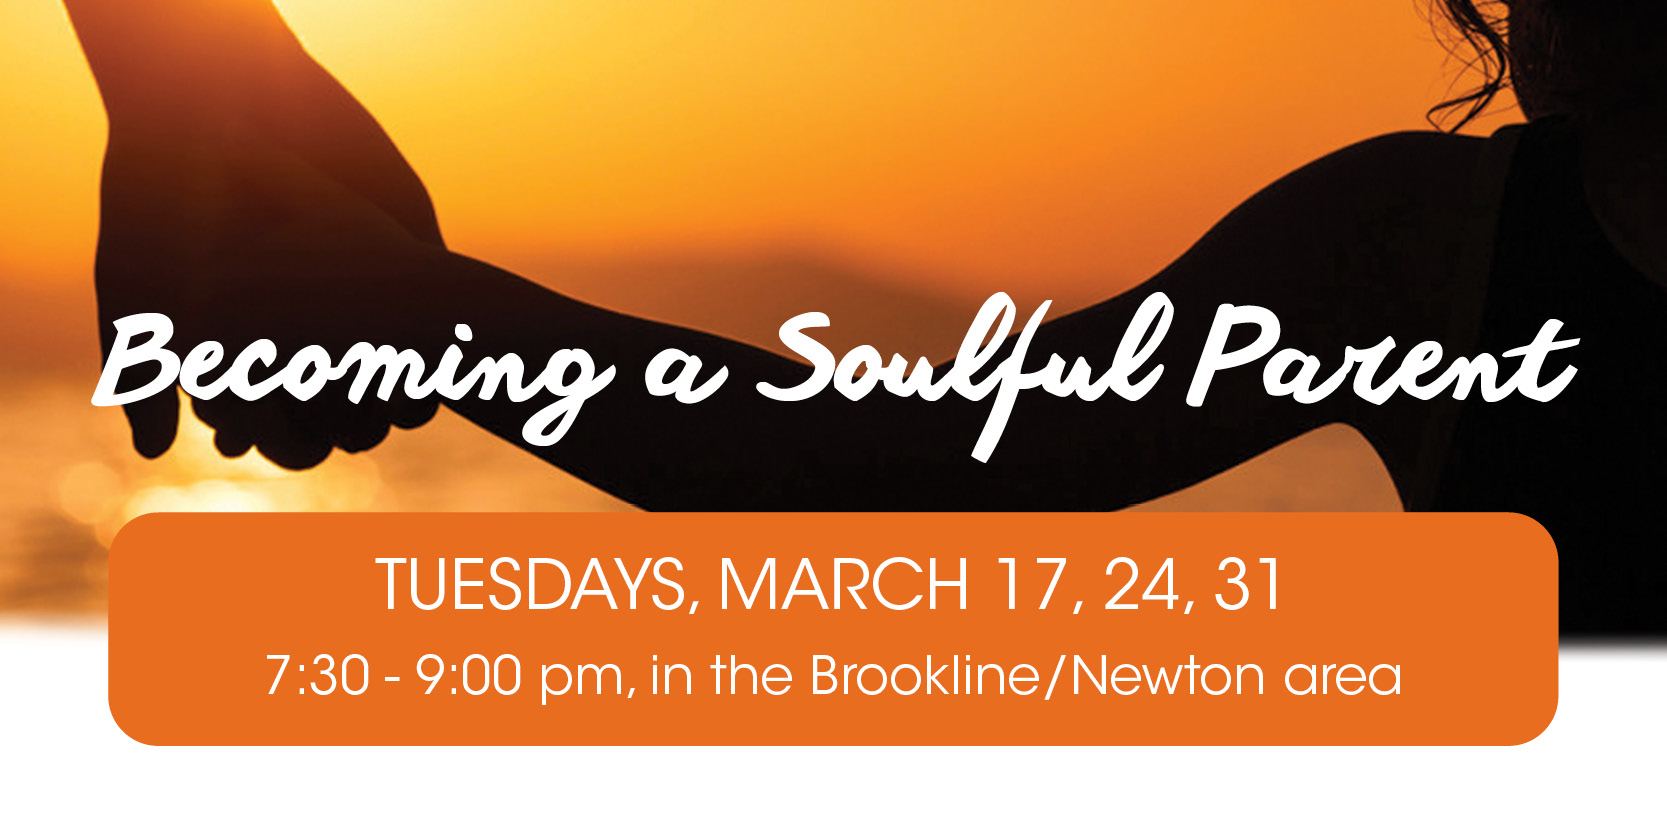 """<a href=""""https://www.tbzbrookline.org/form/soulfulparent.html""""                                     target="""""""">                                                                 <span class=""""slider_title"""">                                     VIRTUAL - Becoming a Soulful Parent: Adult Learning via ZOOM                                </span>                                                                 </a>                                                                                                                                                                                       <span class=""""slider_description"""">If you feel you could use more support moving forward on the longest, uncharted journey of your life, please join us on line for this Becoming a Soulful Parent Workshop, facilitated by Ilana Margalit.</span>                                                                                     <a href=""""https://www.tbzbrookline.org/form/soulfulparent.html"""" class=""""slider_link""""                             target="""""""">                             LEARN MORE & REGISTER                            </a>"""